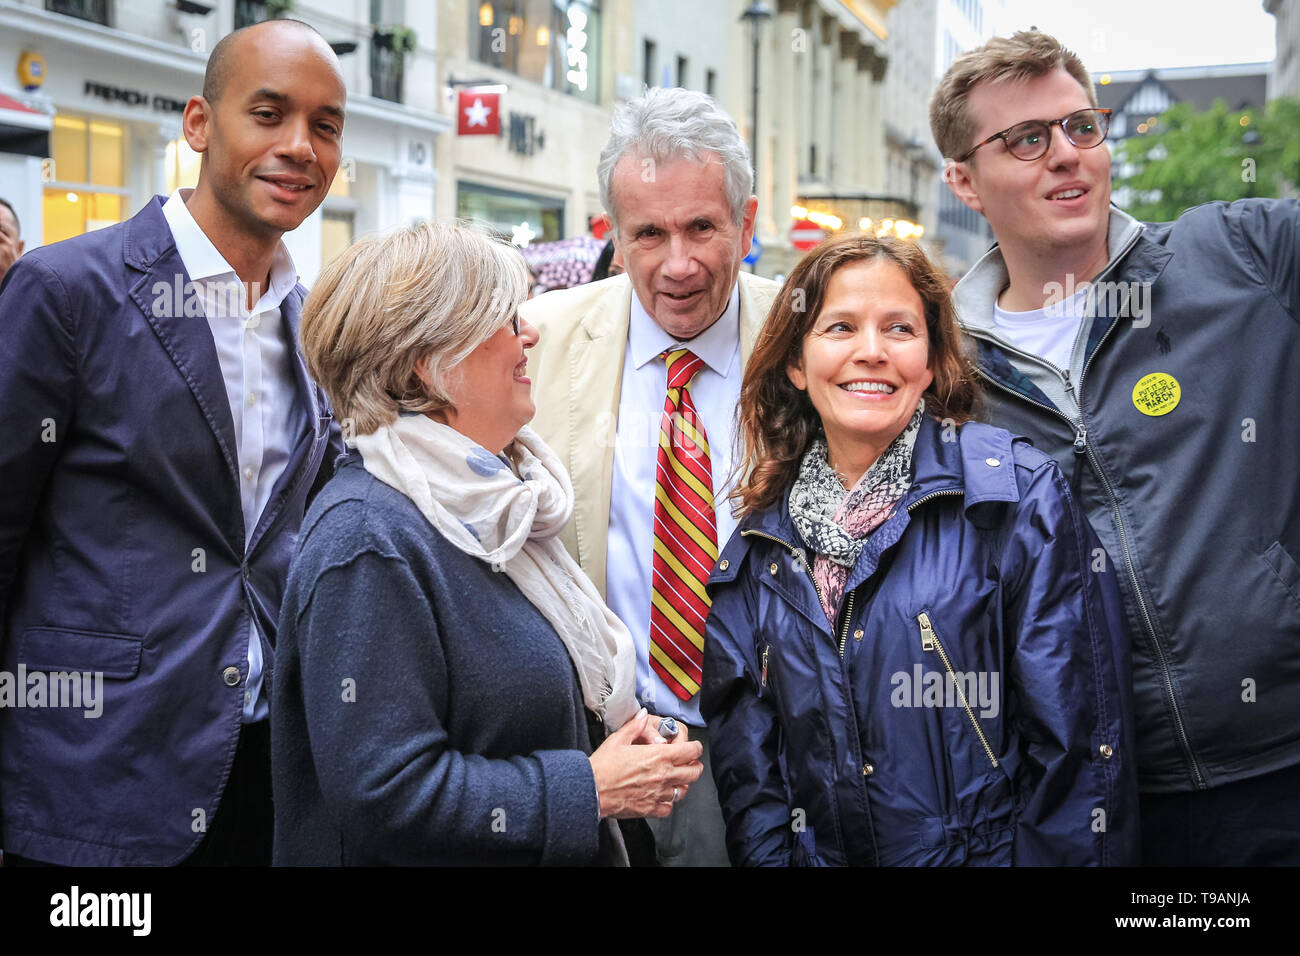 London, UK, 17th May 2019. Chuka Umunna, MP (left), Martin Bell (middle) and others. Change UK (formerly the Independent Group) campaign in Argyll Street near Oxford Circus in Central London, as part of their European Elections efforts. Chuka Umunna MP, former war correspondent and independent MP Martin Bell, Change UK MEP candidate Gavin Esler, and Change UK MEP candidates for London hand out leaflets and chat to the public as part of the EU Election campaign. Credit: Imageplotter/Alamy Live News Stock Photo